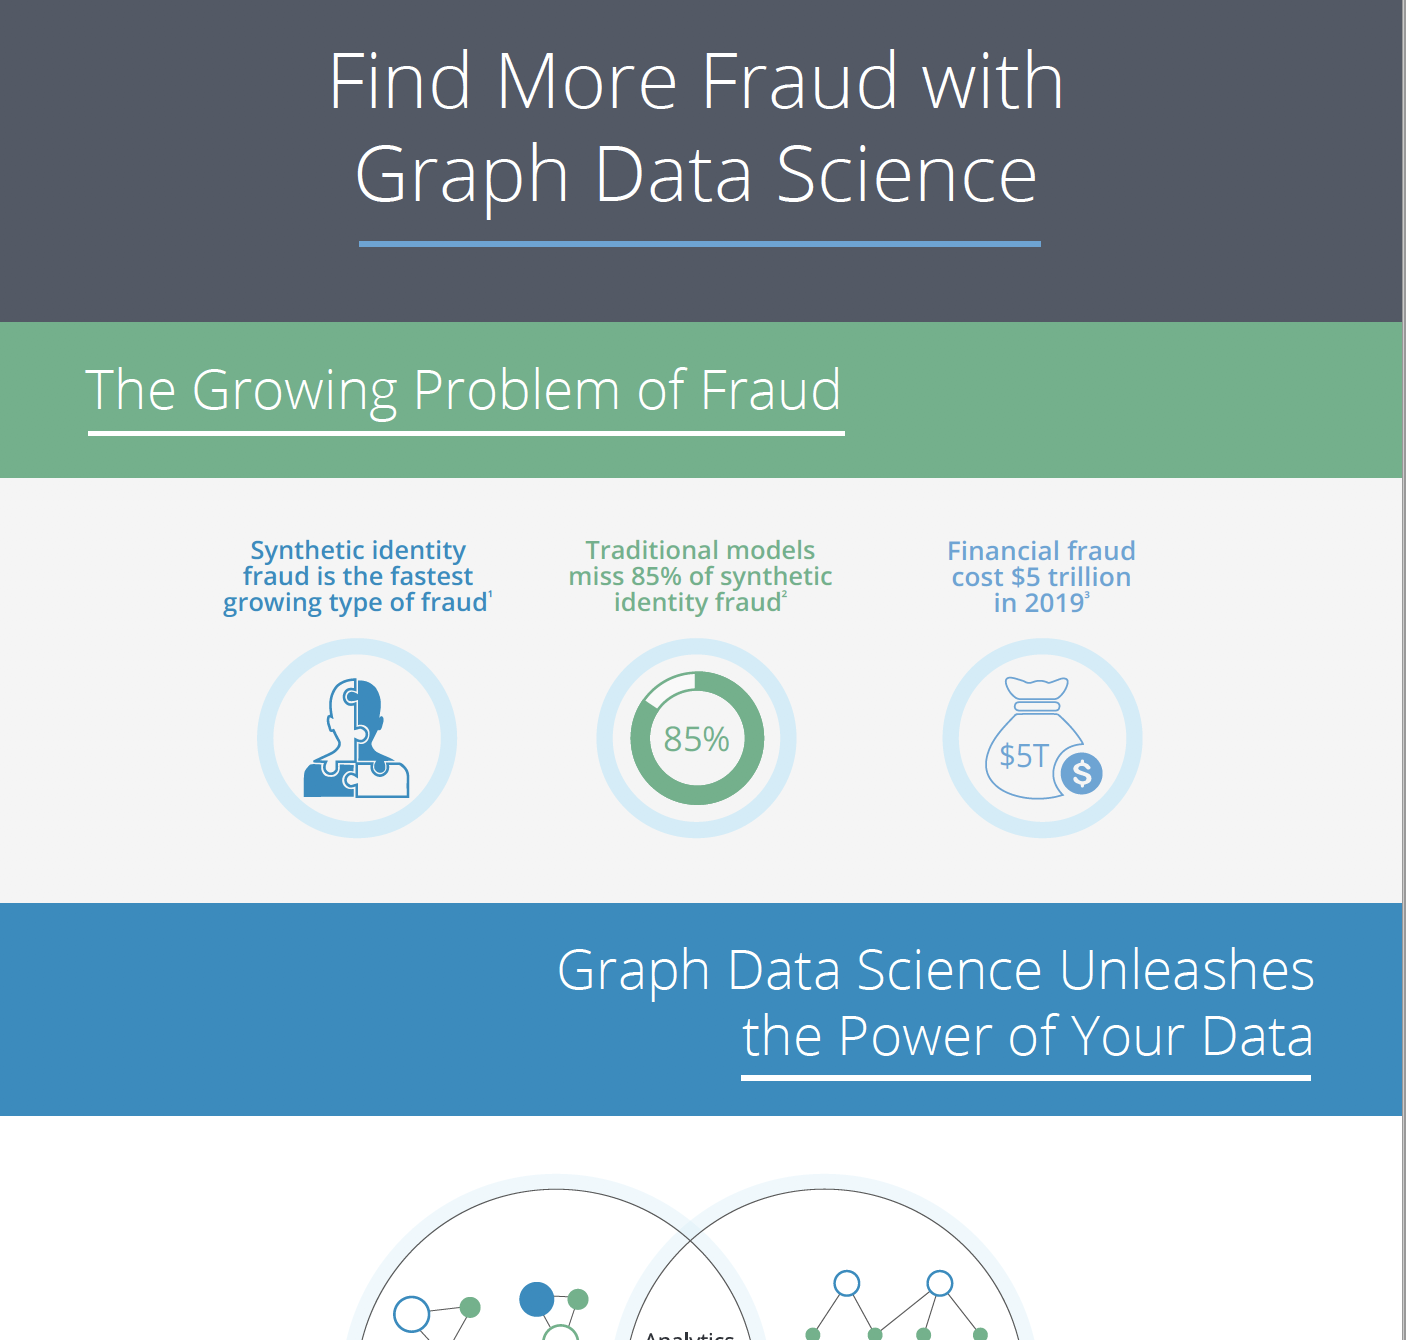 preview-image-finding-fraud-with-graph-data-science-infographic